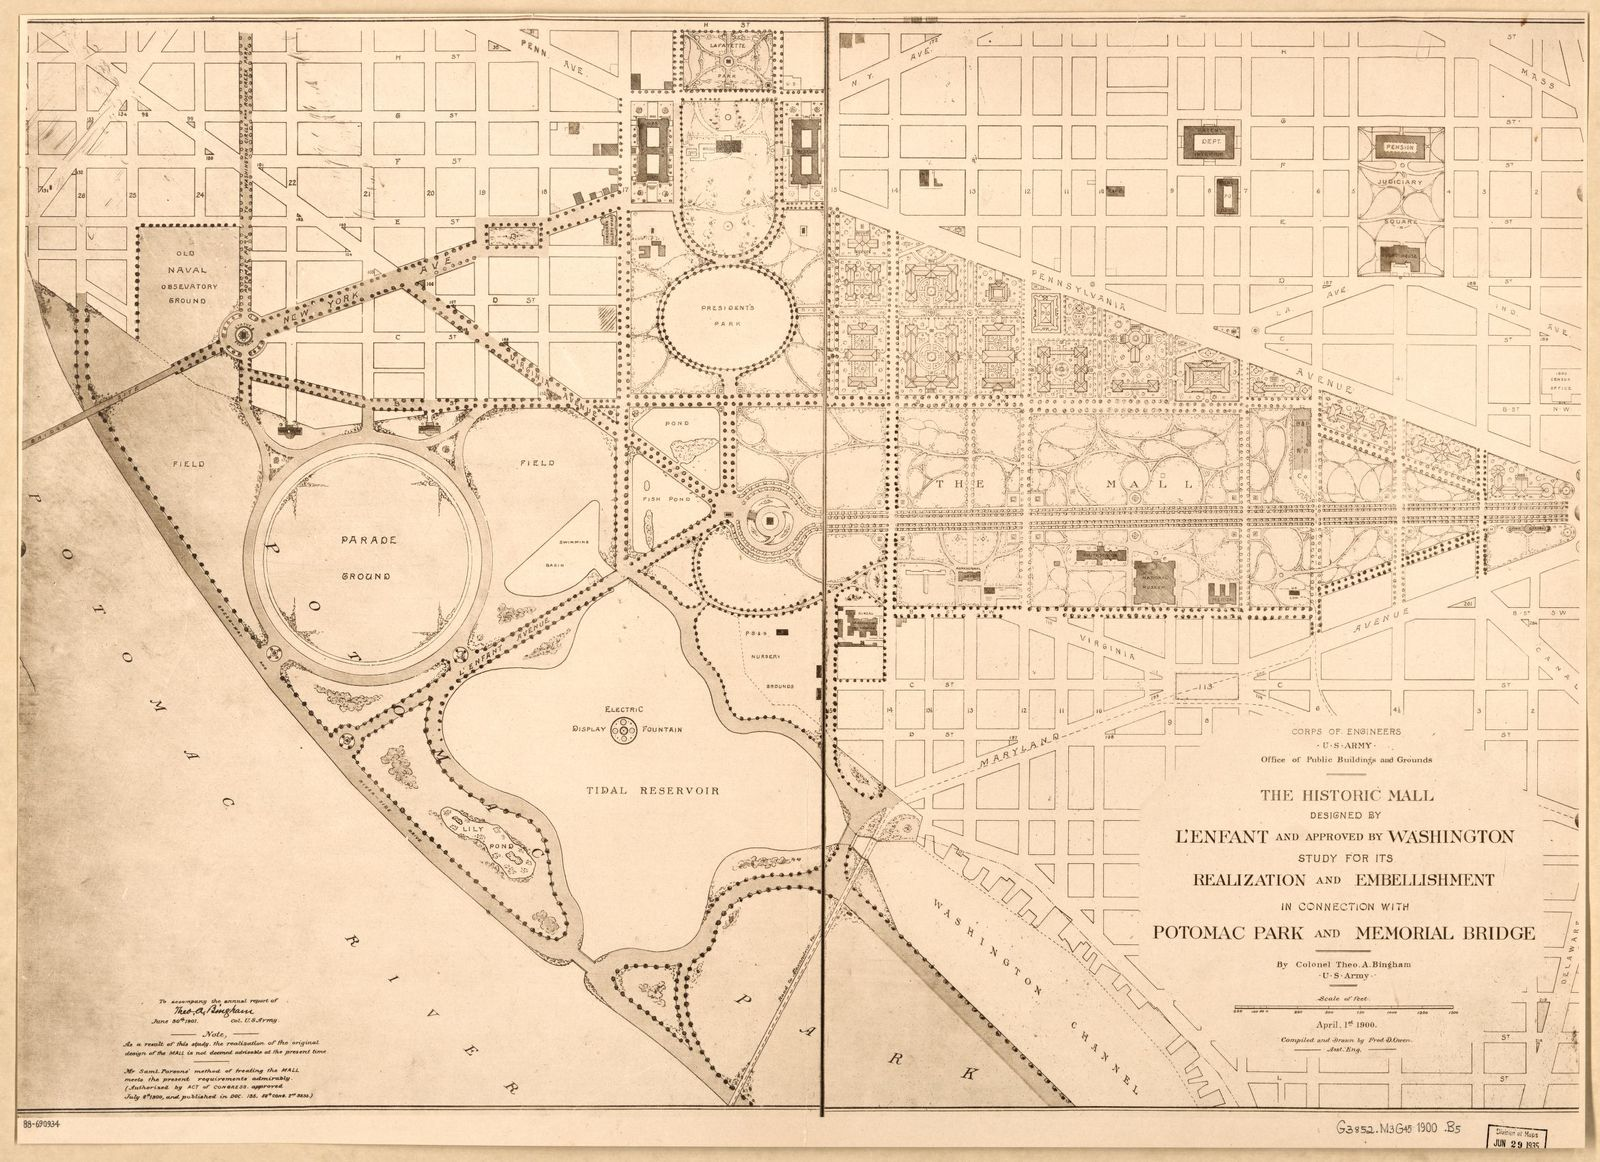 The historic Mall designed by L'Enfant and approved by Washington : study for its realization and embellishment in connection with Potomac Park and Memorial Bridge /